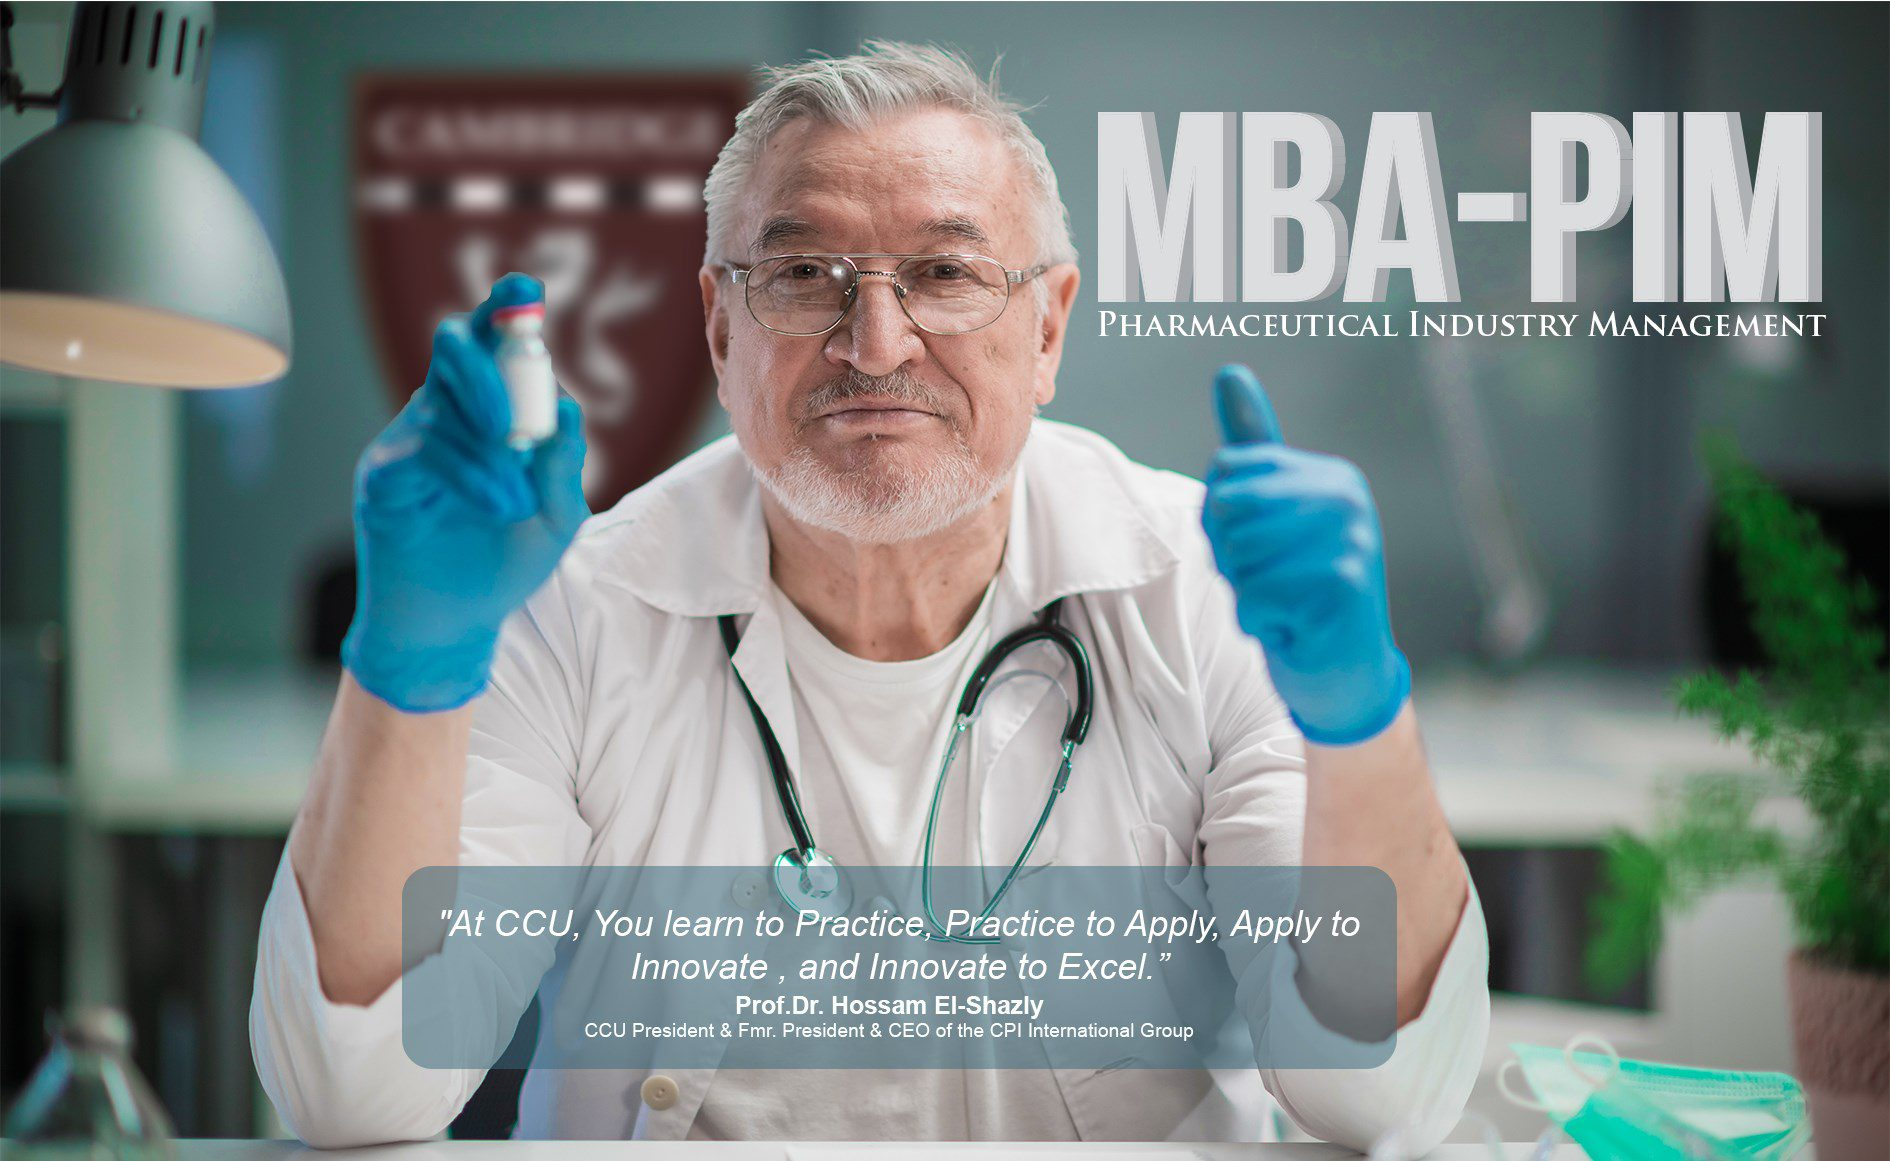 MBA in Pharmaceutical Industry Management